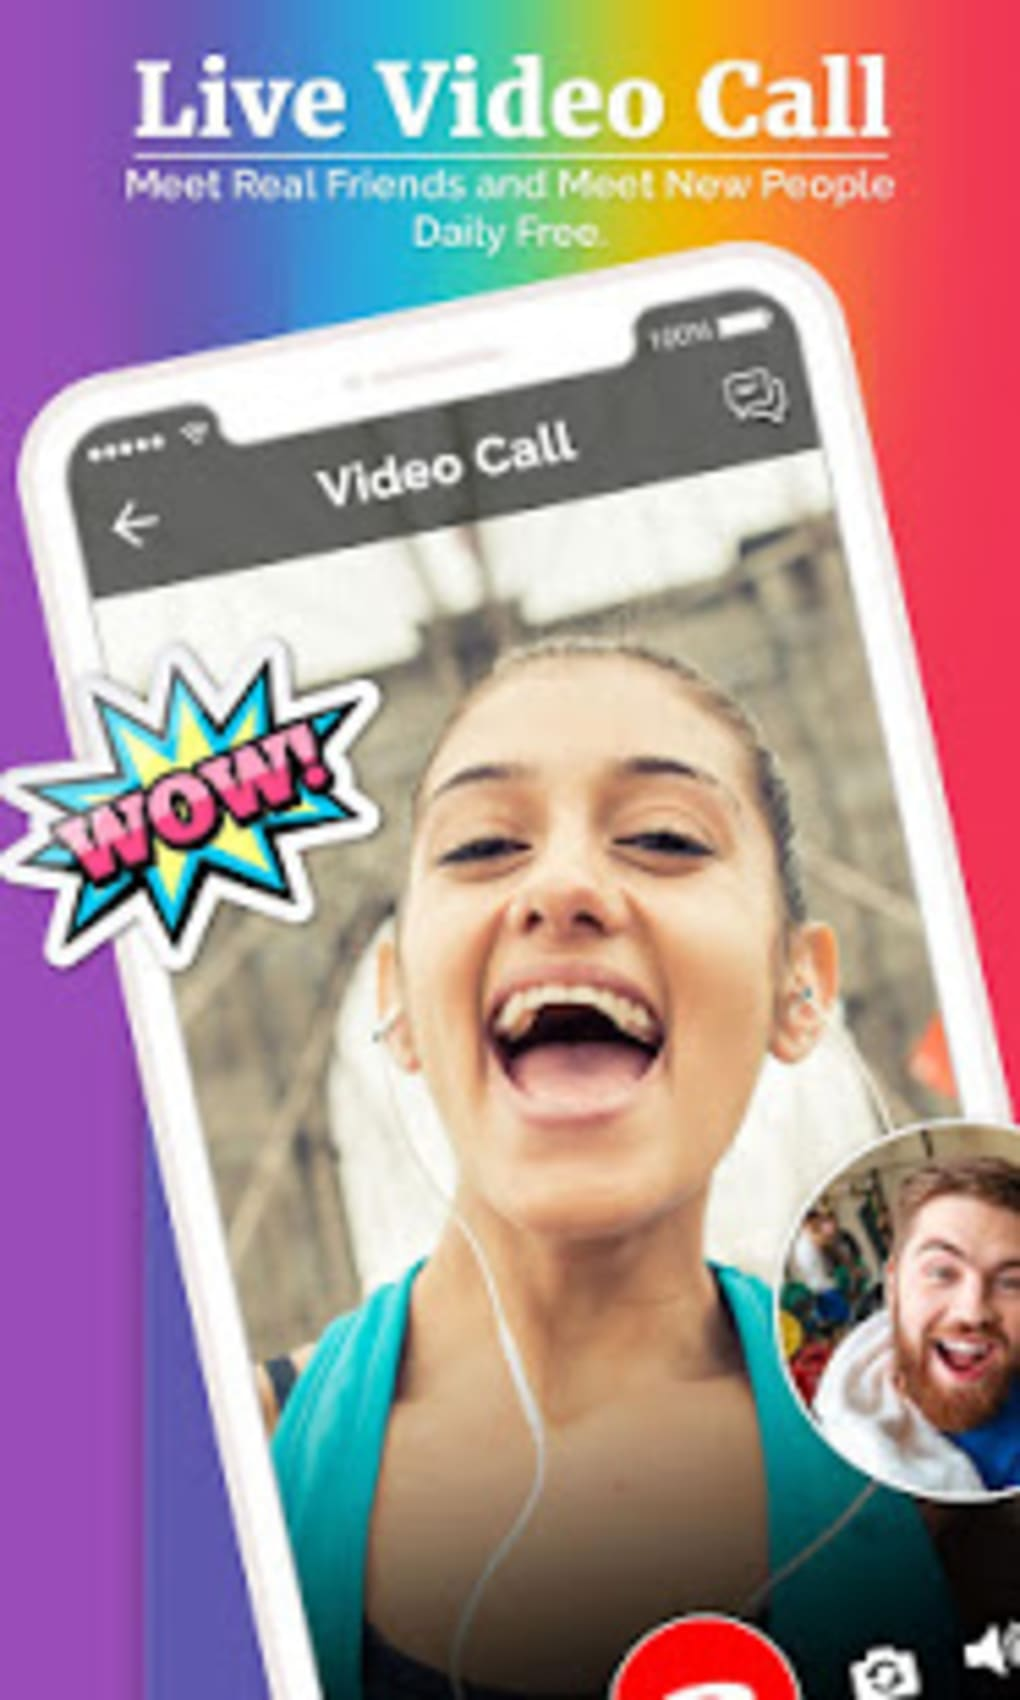 ViVi : Live Video Call for Android - Download